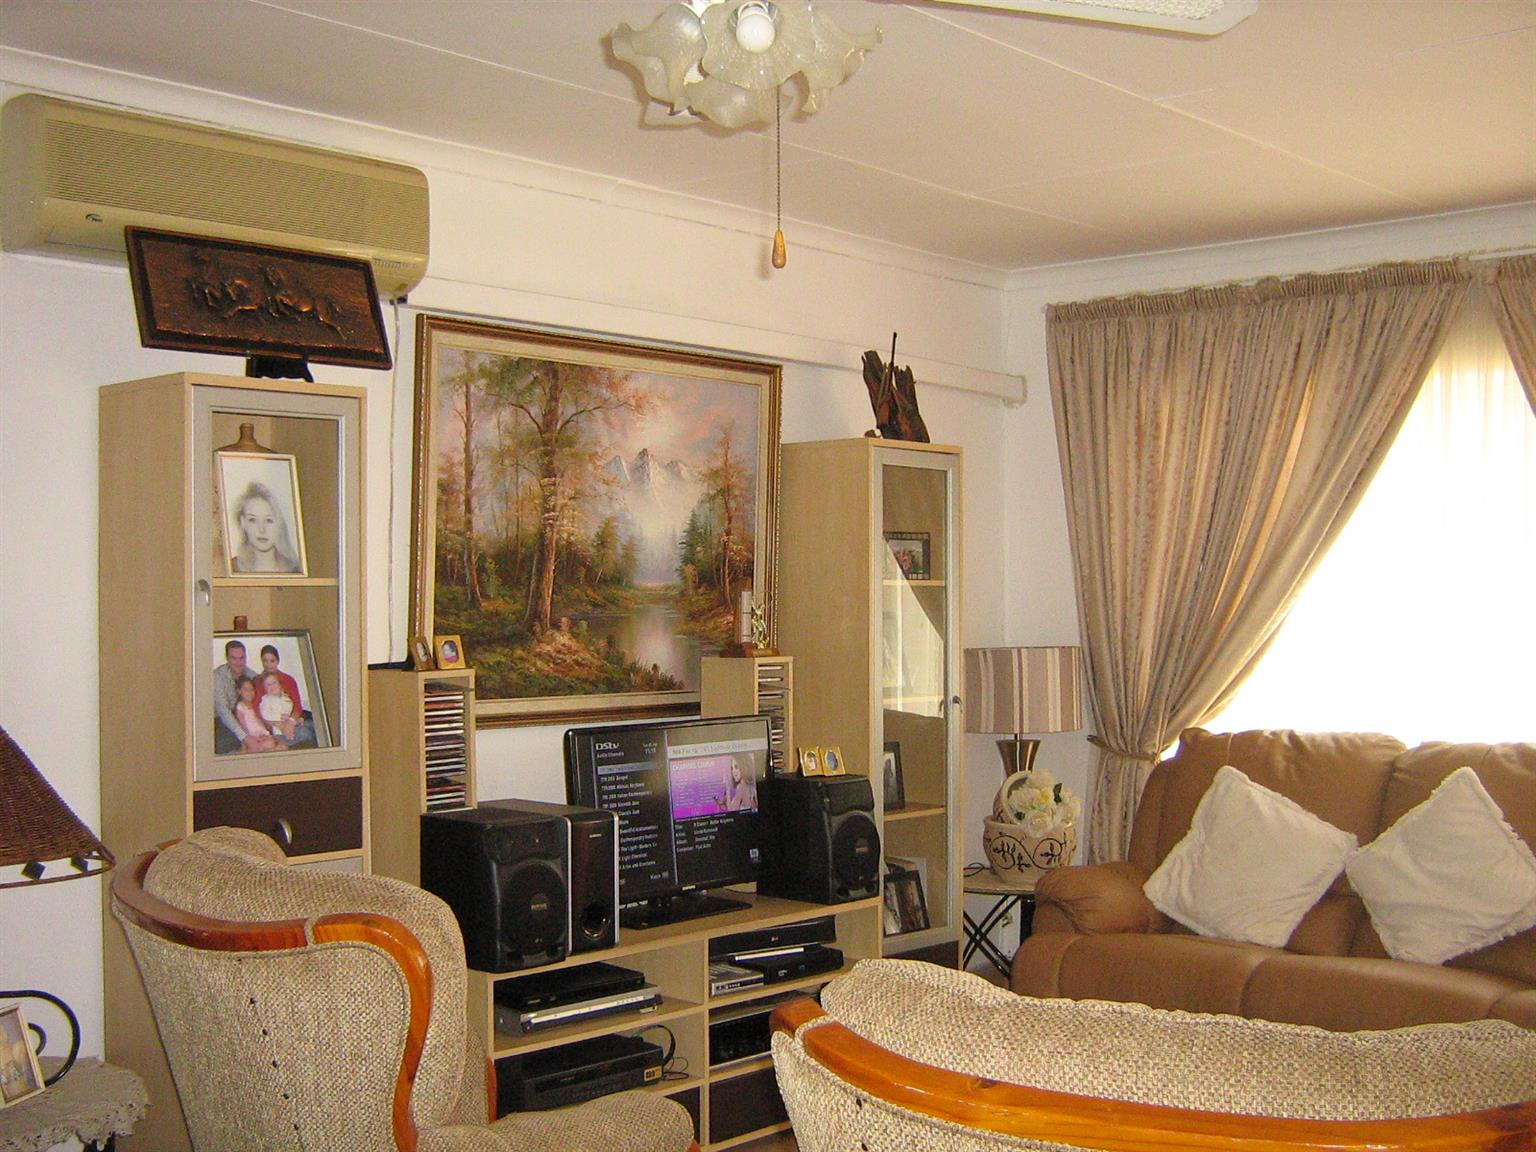 STUNNING 2 BEDROOM FLAT FOR SALE: